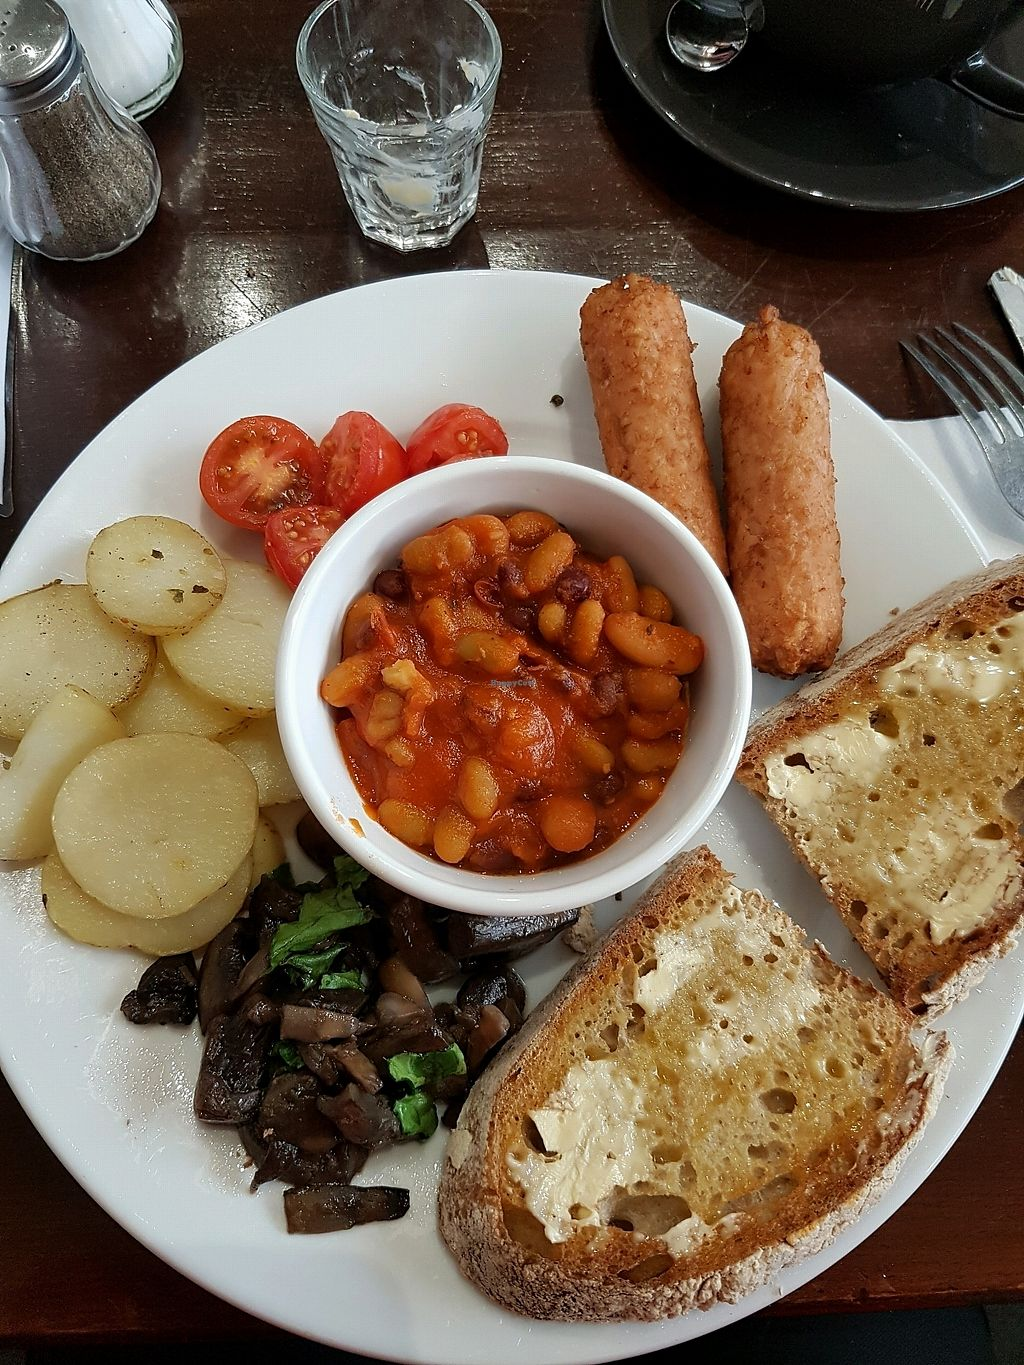 """Photo of The V & V Cafe  by <a href=""""/members/profile/bpaula35"""">bpaula35</a> <br/>Vegan cooked breakfast  <br/> January 14, 2018  - <a href='/contact/abuse/image/87908/346395'>Report</a>"""